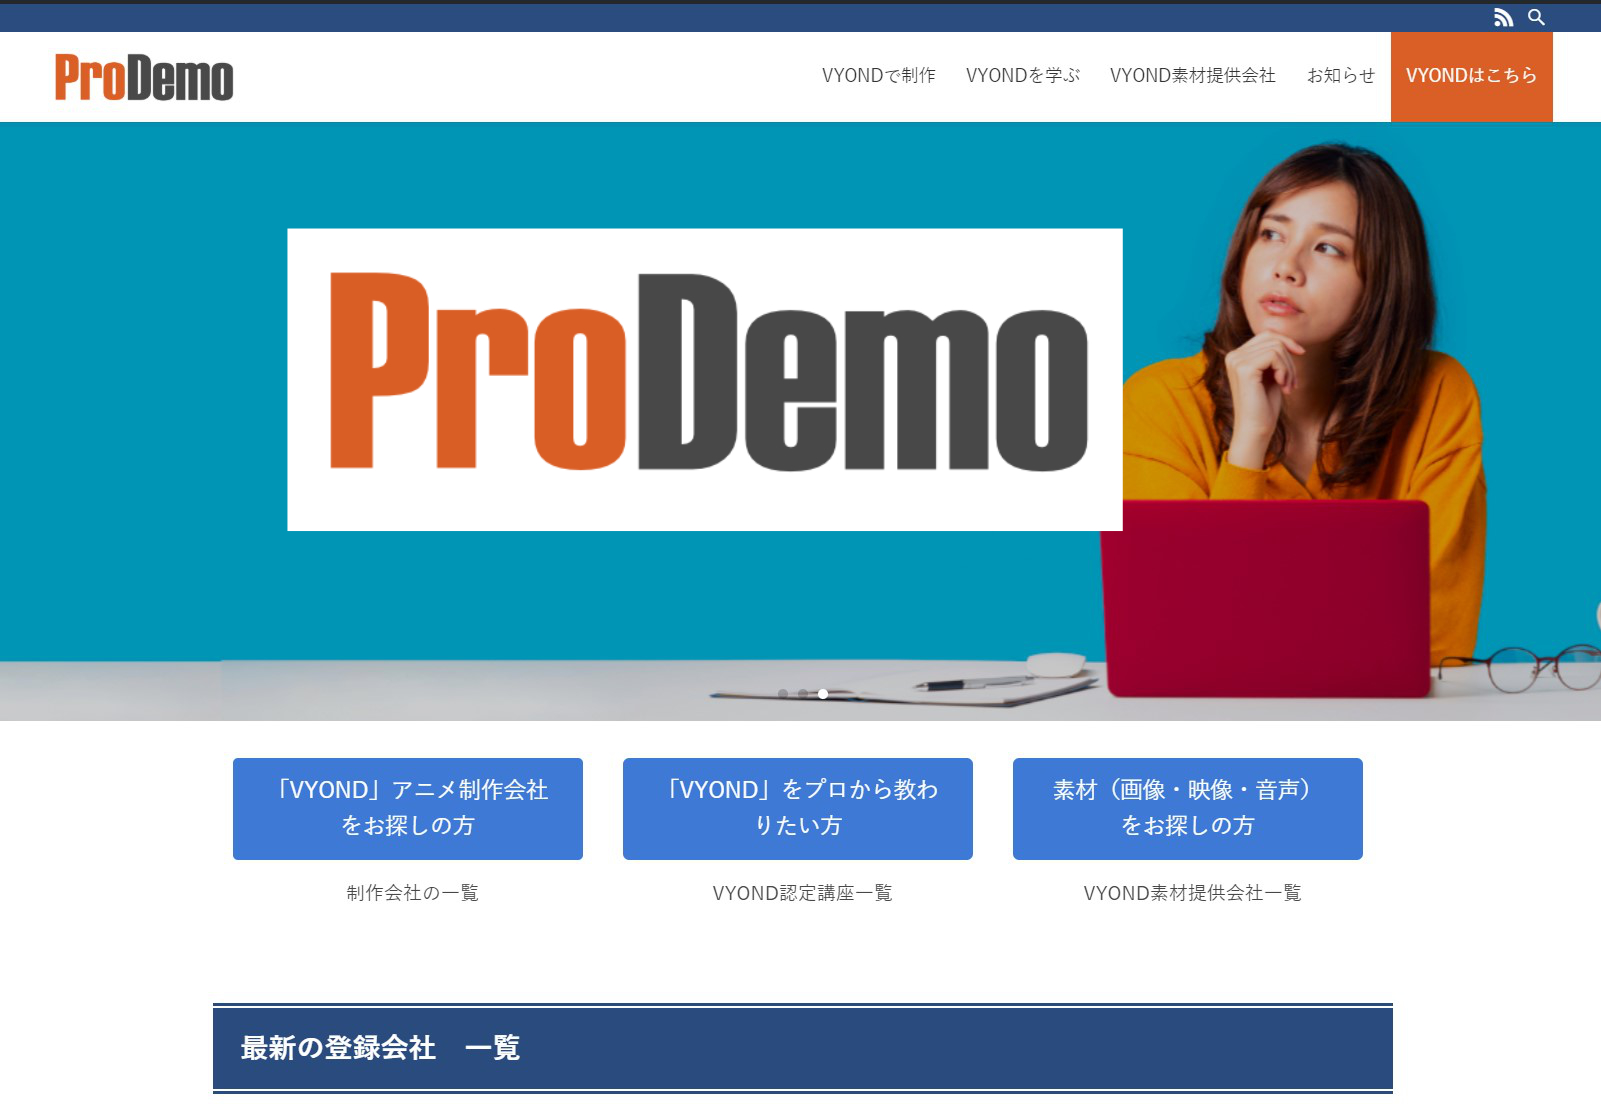 VYOND プロフェッショナルの総合案内 PRODEMO